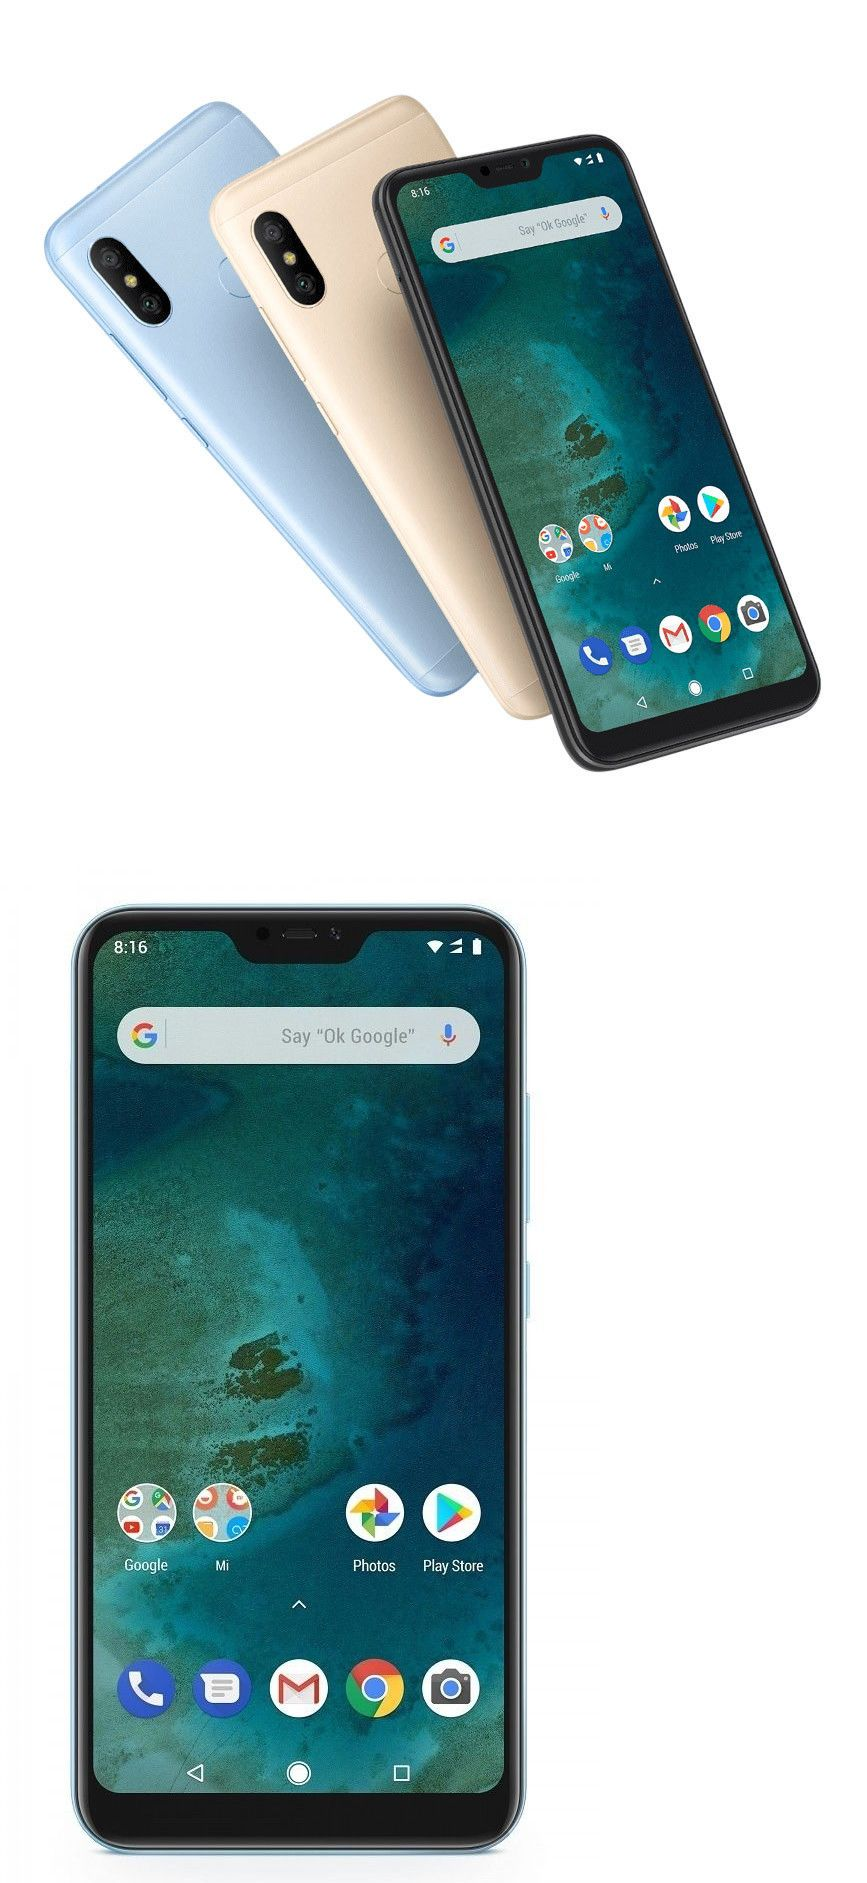 Cell Phones And Smartphones 9355 Xiaomi Mi A2 Lite Factory Unlocked 5 84 64gb 4gb Ram Black Gold Blue Gl Prepaid Phones T Mobile Phones Samsung Cell Phones